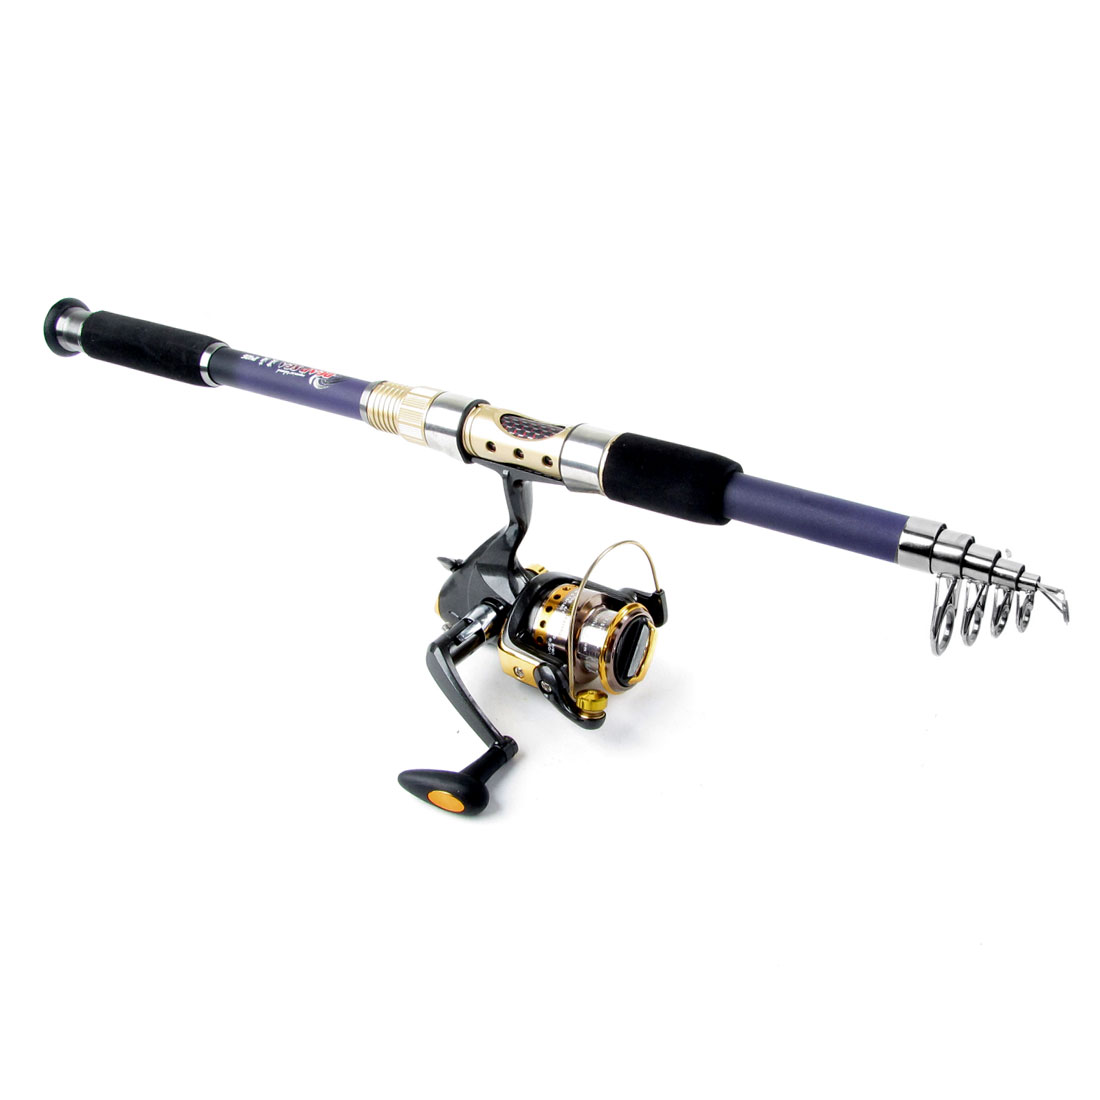 Telescopic 6 Sections 2.3M Fishing Rod Pole + Gear Ratio 5.1 : 1 Spinning Reel